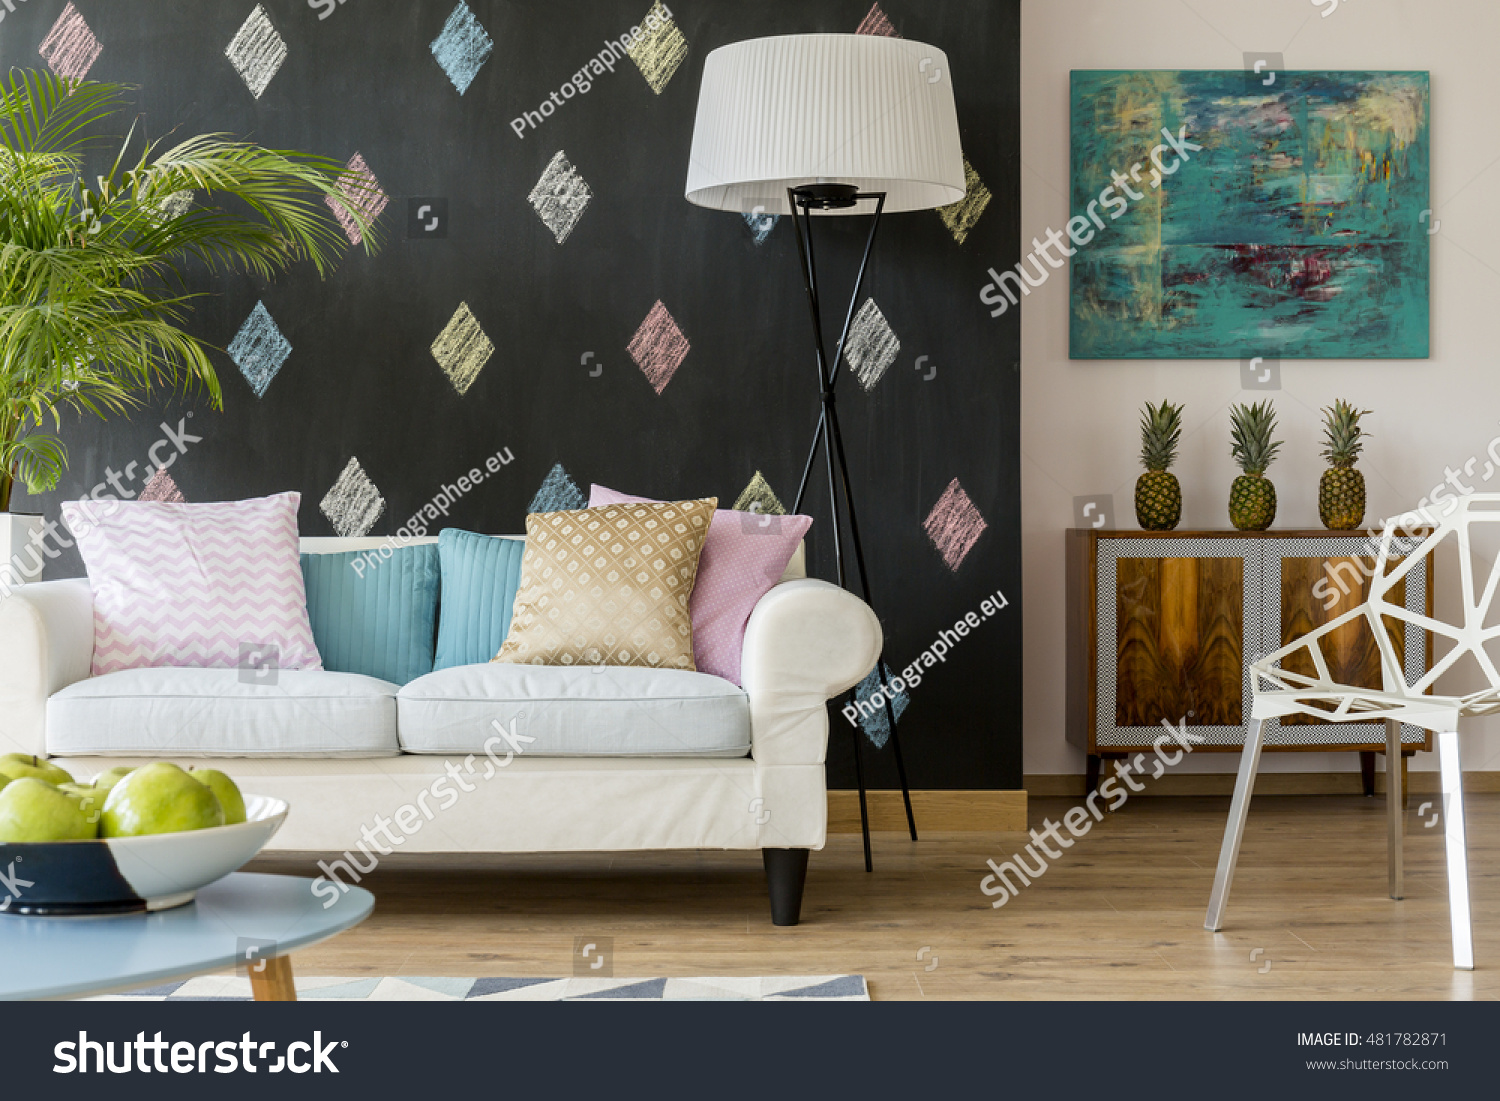 Cozy Modern Living Room shot cozy modern living room big stock photo 481782871 - shutterstock